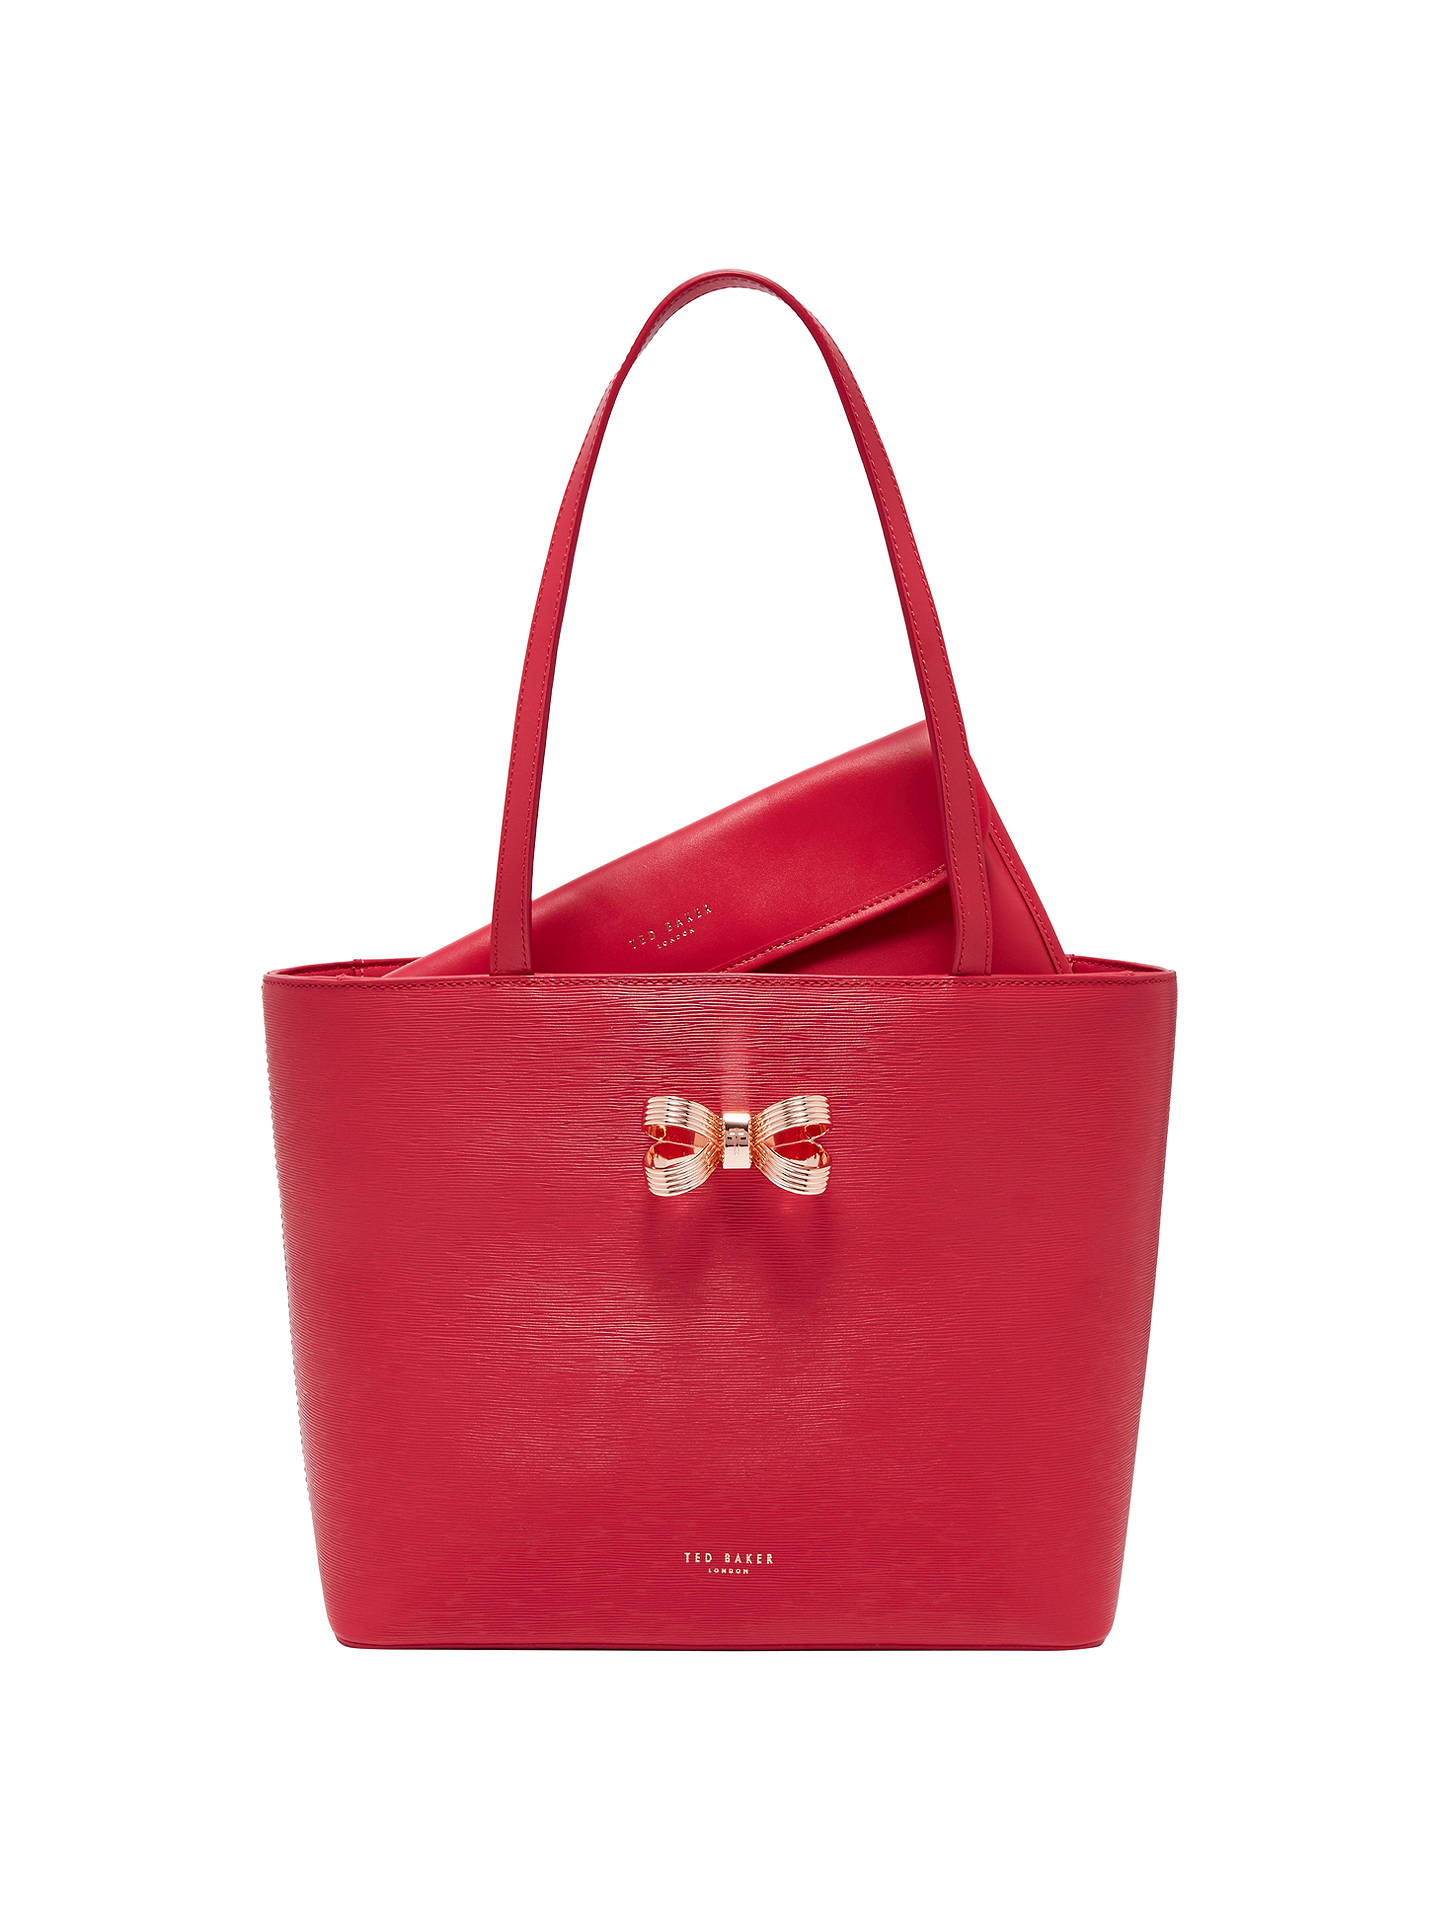 Ted Baker Bowdai Leather Small Per Bag Deep Pink Online At Johnlewis